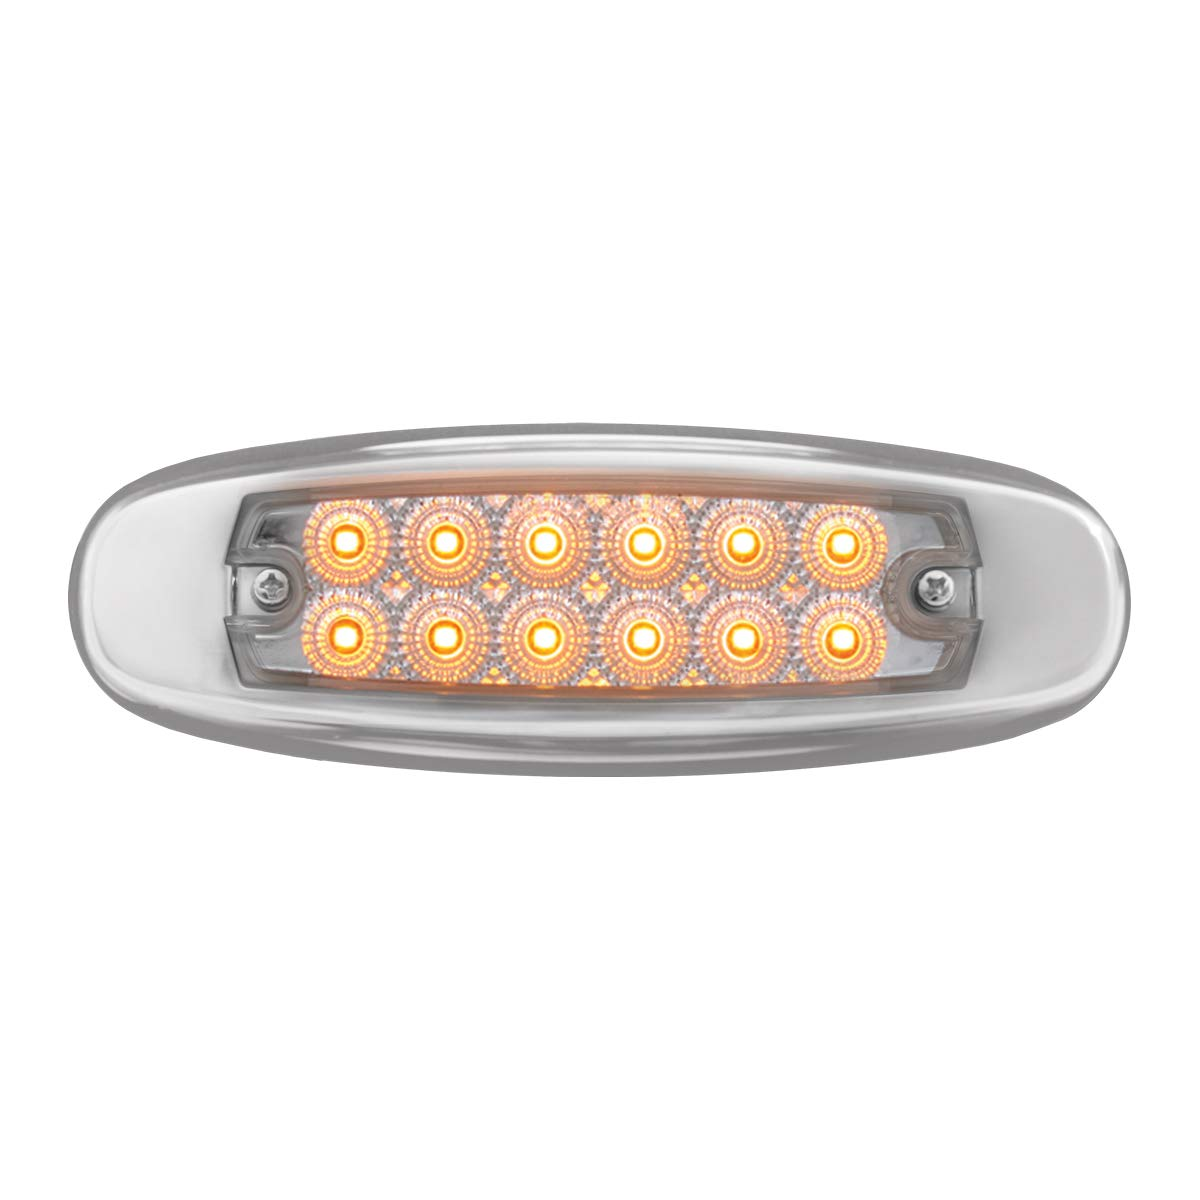 Ultra Thin Spyder Am//Clear 12LED Dual Function With S.S. Rim Grand General 76441 Light